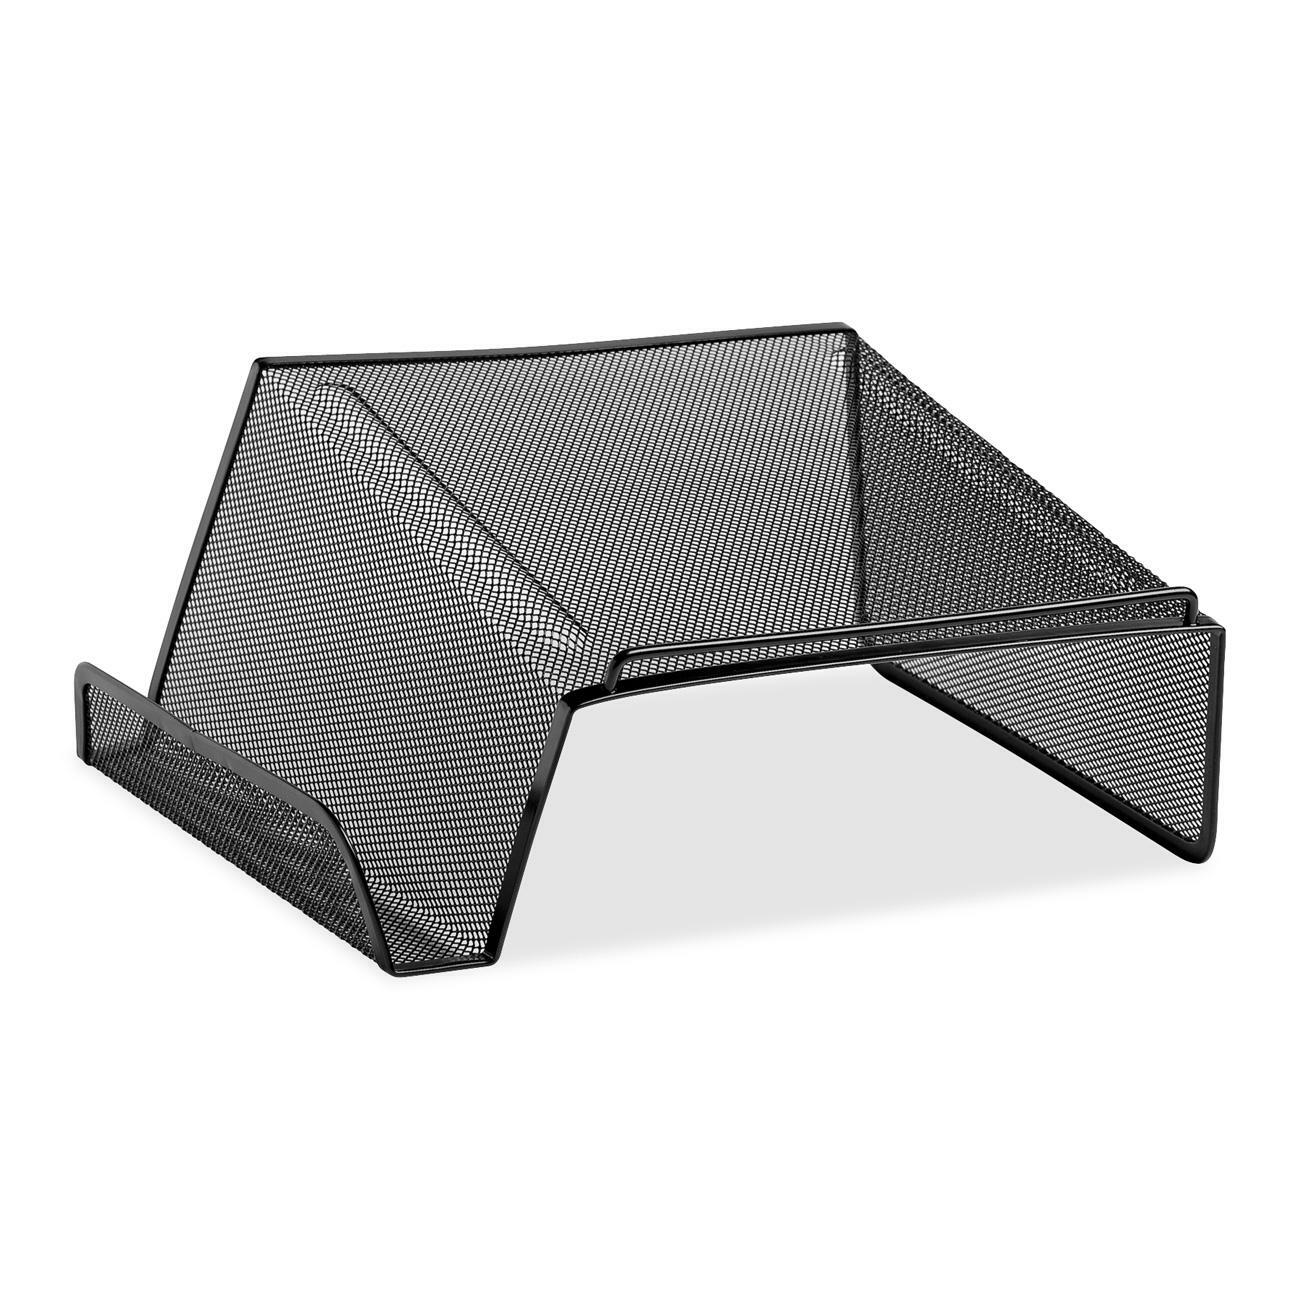 Mesh Phone Stand Raises Telephone Off The Desktop Area Below Accommodates Books Up To 8 3 4 Wide Side Compartment Holds Memo Pad And Pen